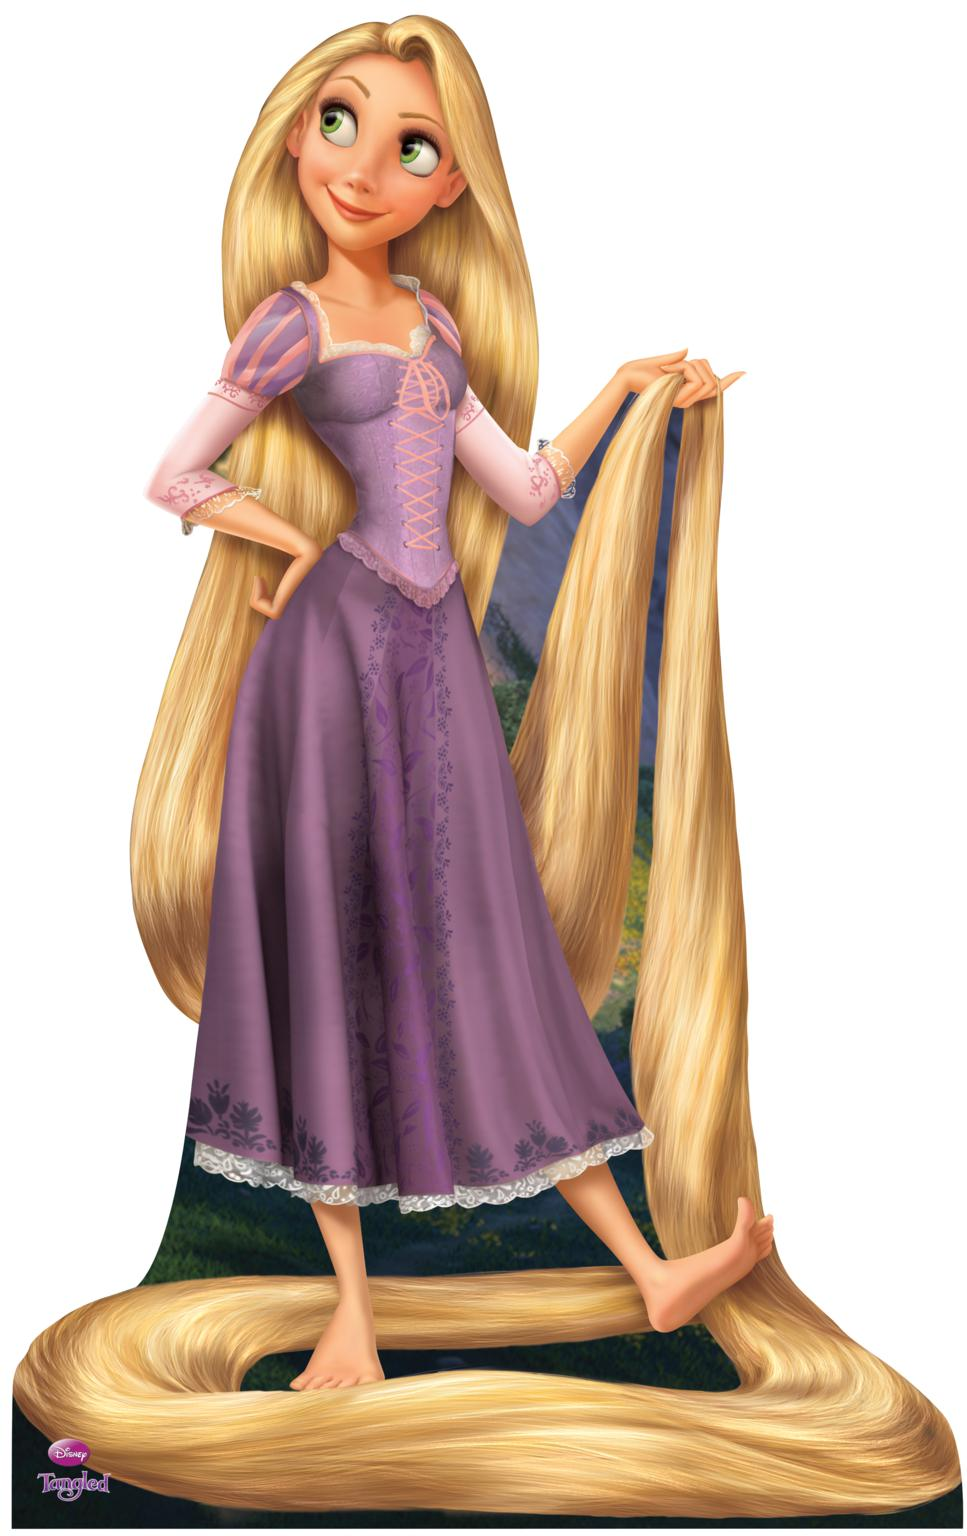 Rapunzel wallpapers